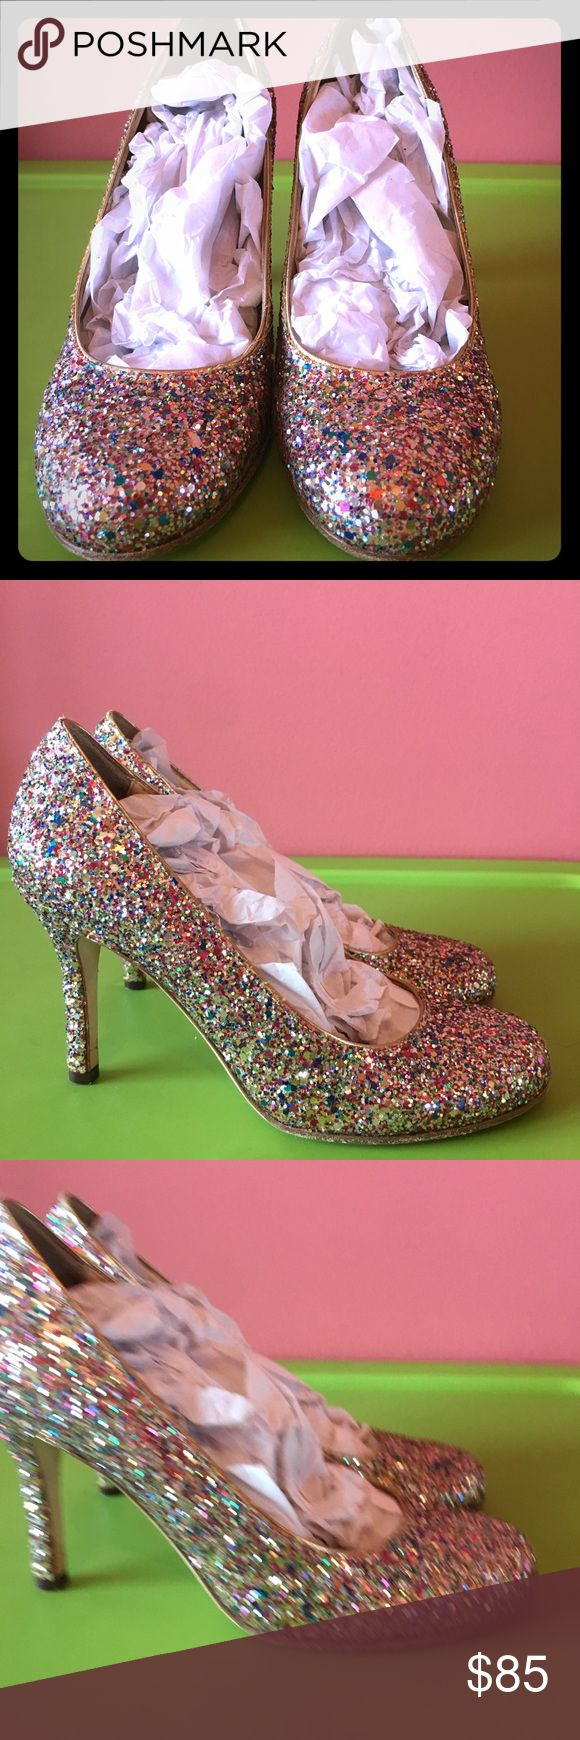 """Kate Spade Karolina Multi-Glitter Heels Worn once - 3.5"""" heel. Made in Italy. Perfect for any special occasion or to dress up any outfit! kate spade Shoes Heels"""